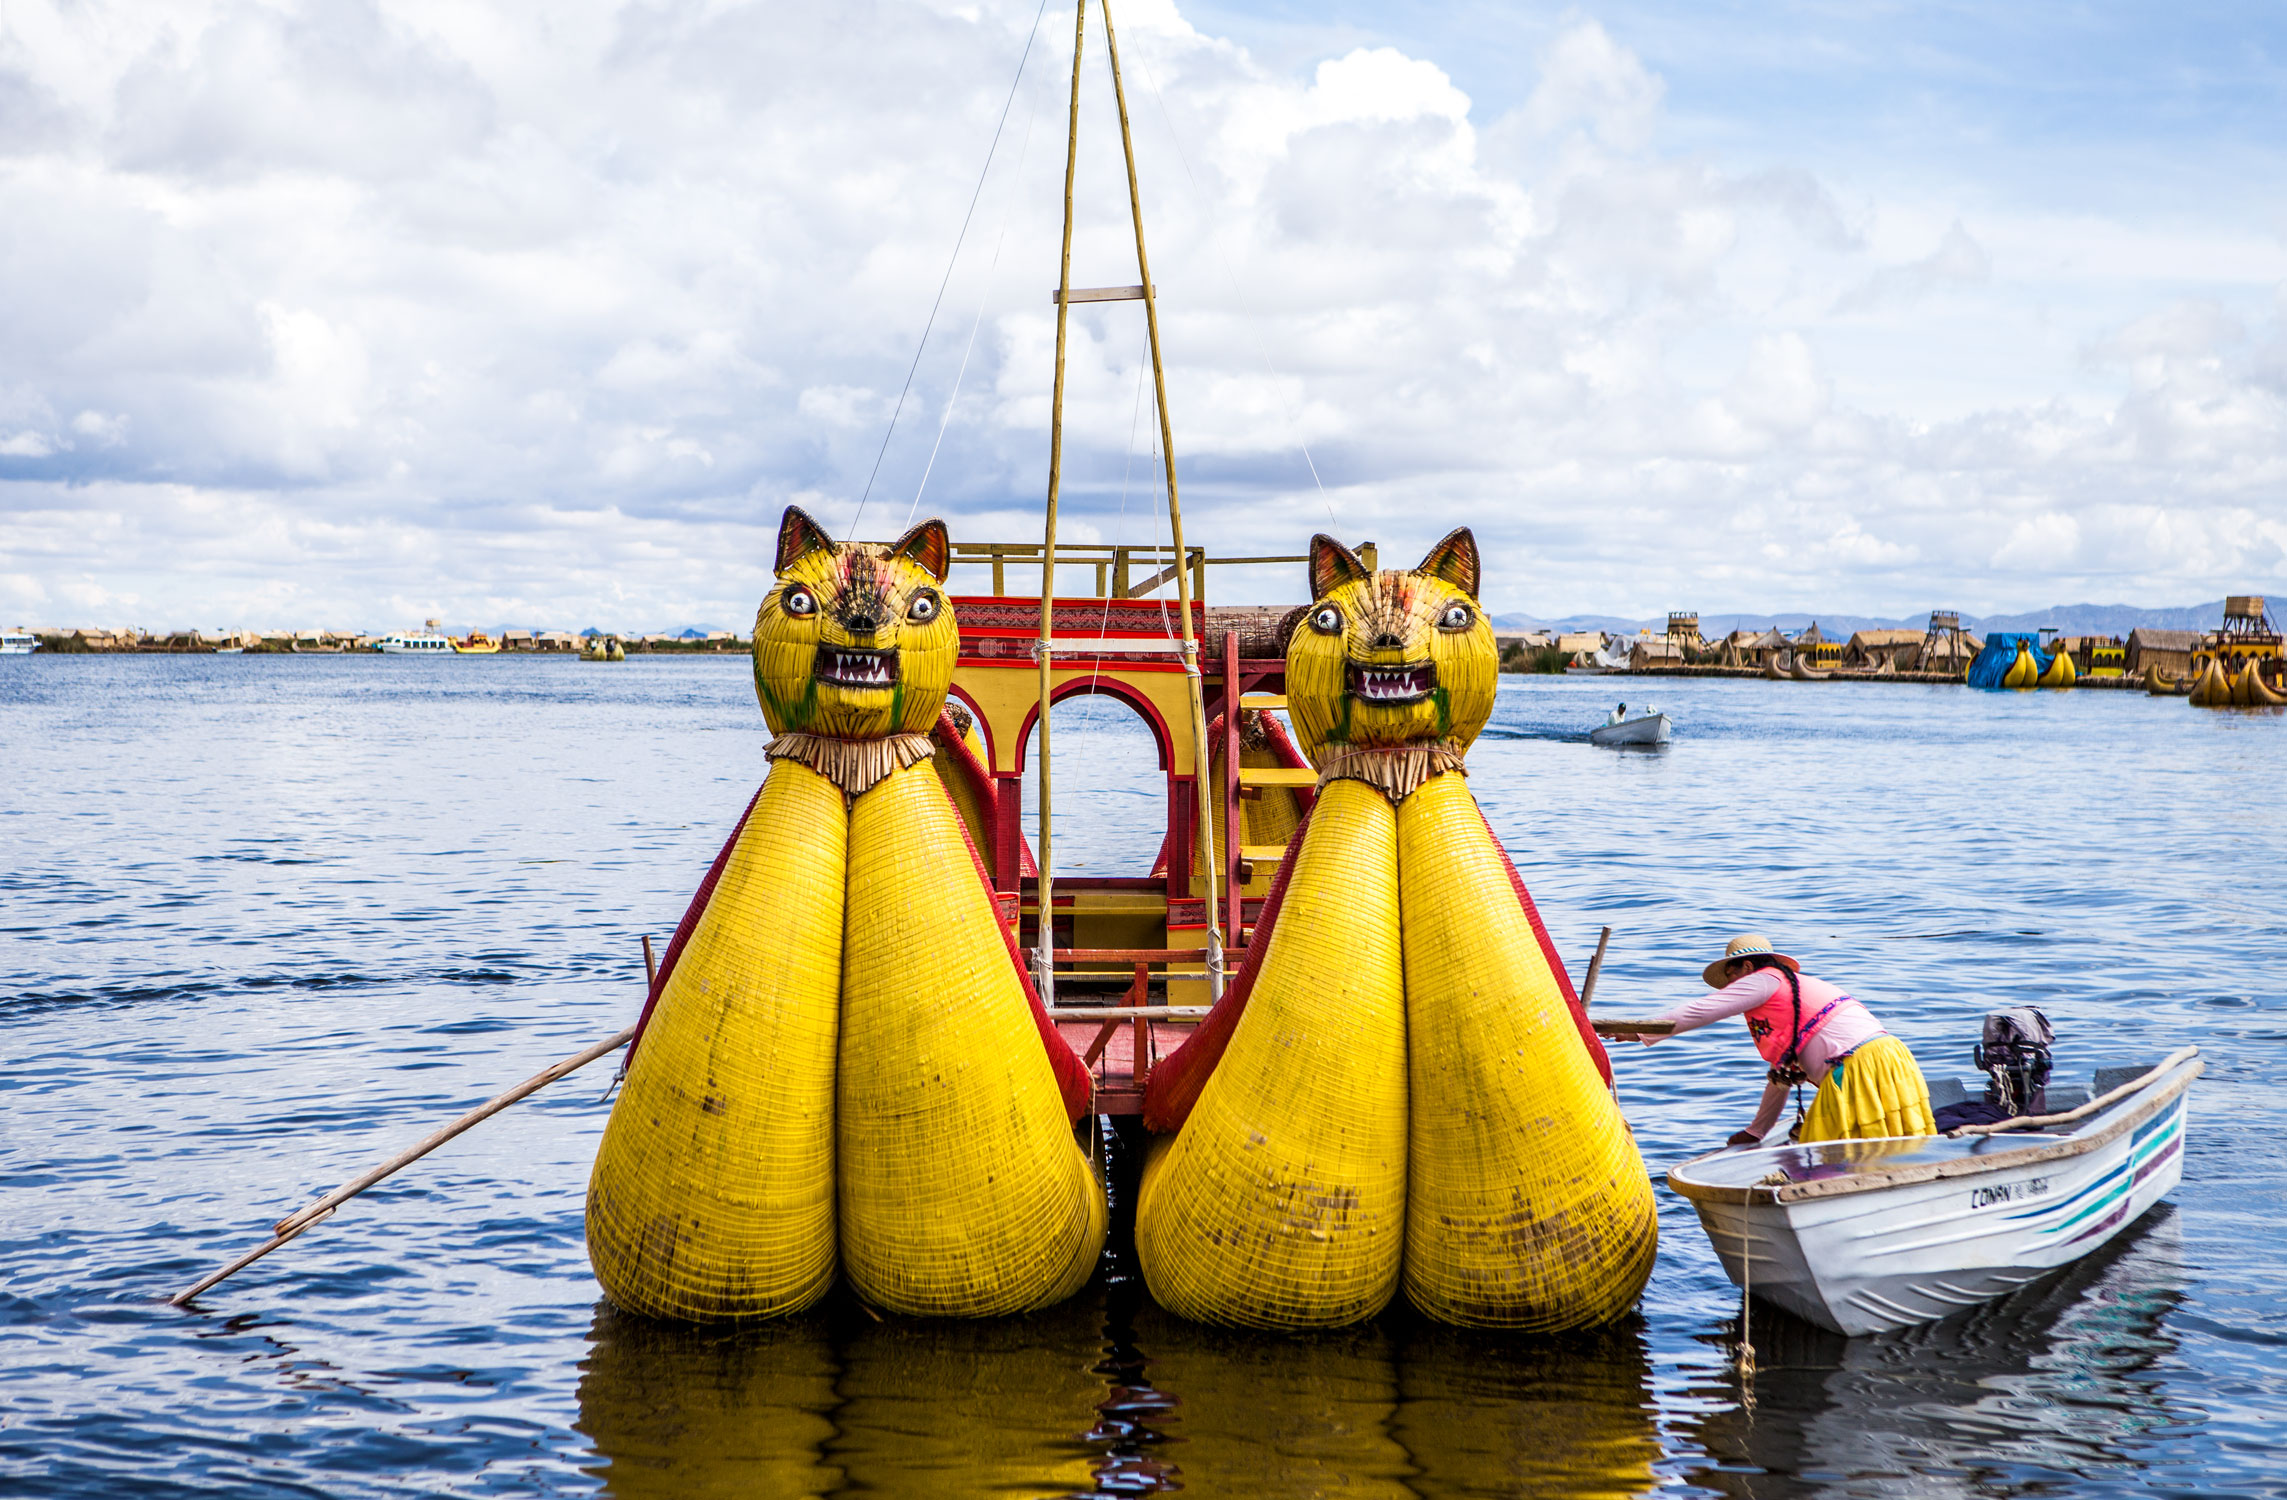 lake-titicaca-puno-peru-wander-south-reed-puma-cat-boat-2.jpg